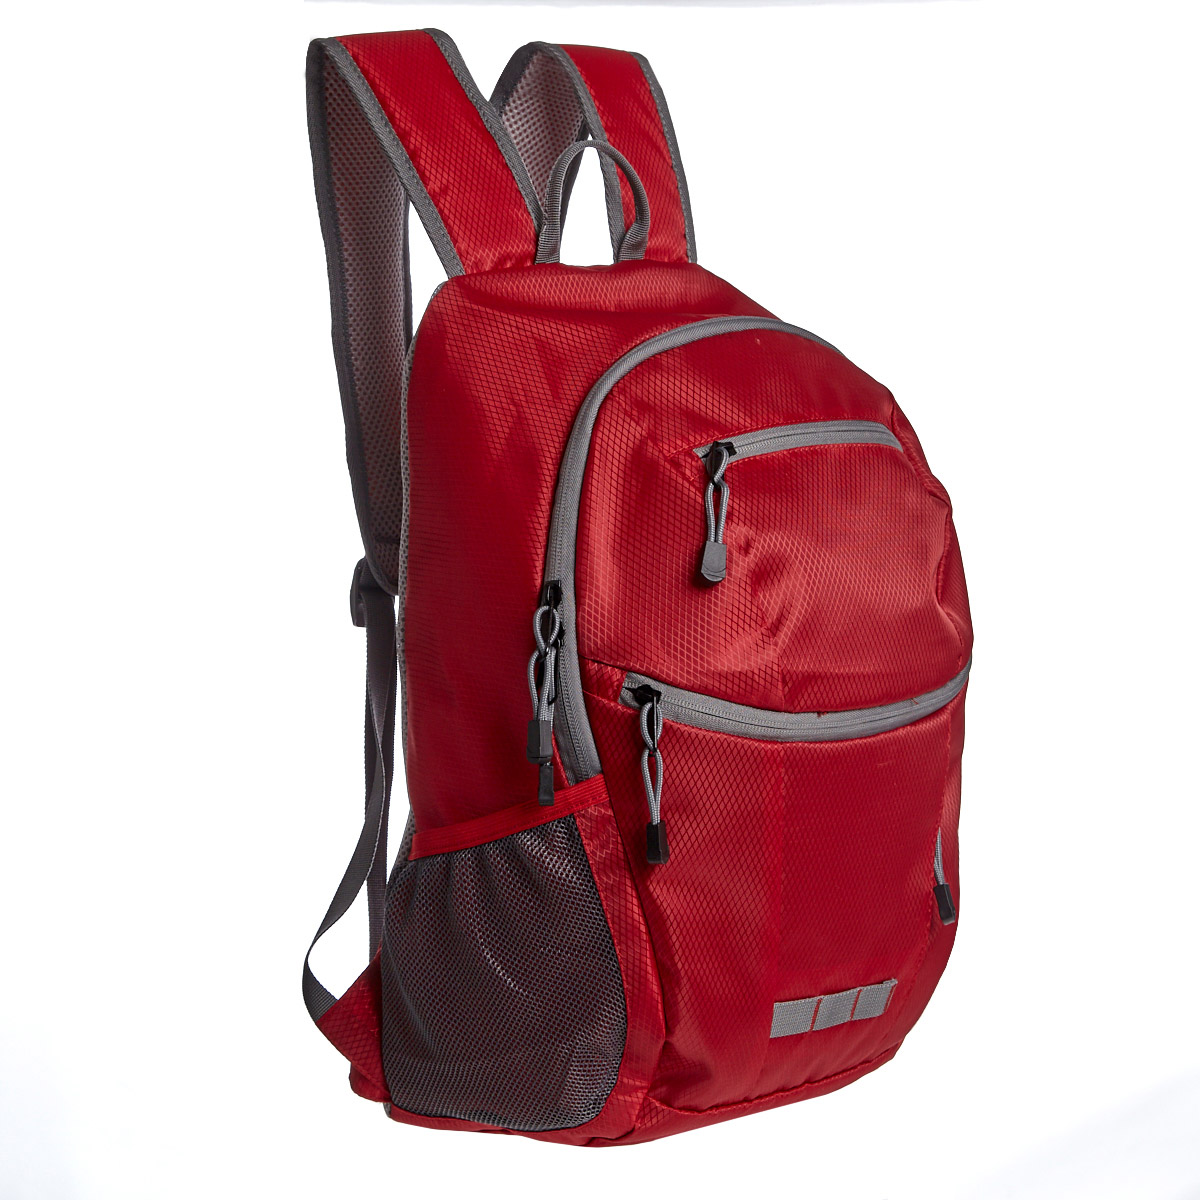 red Foldaway Backpack